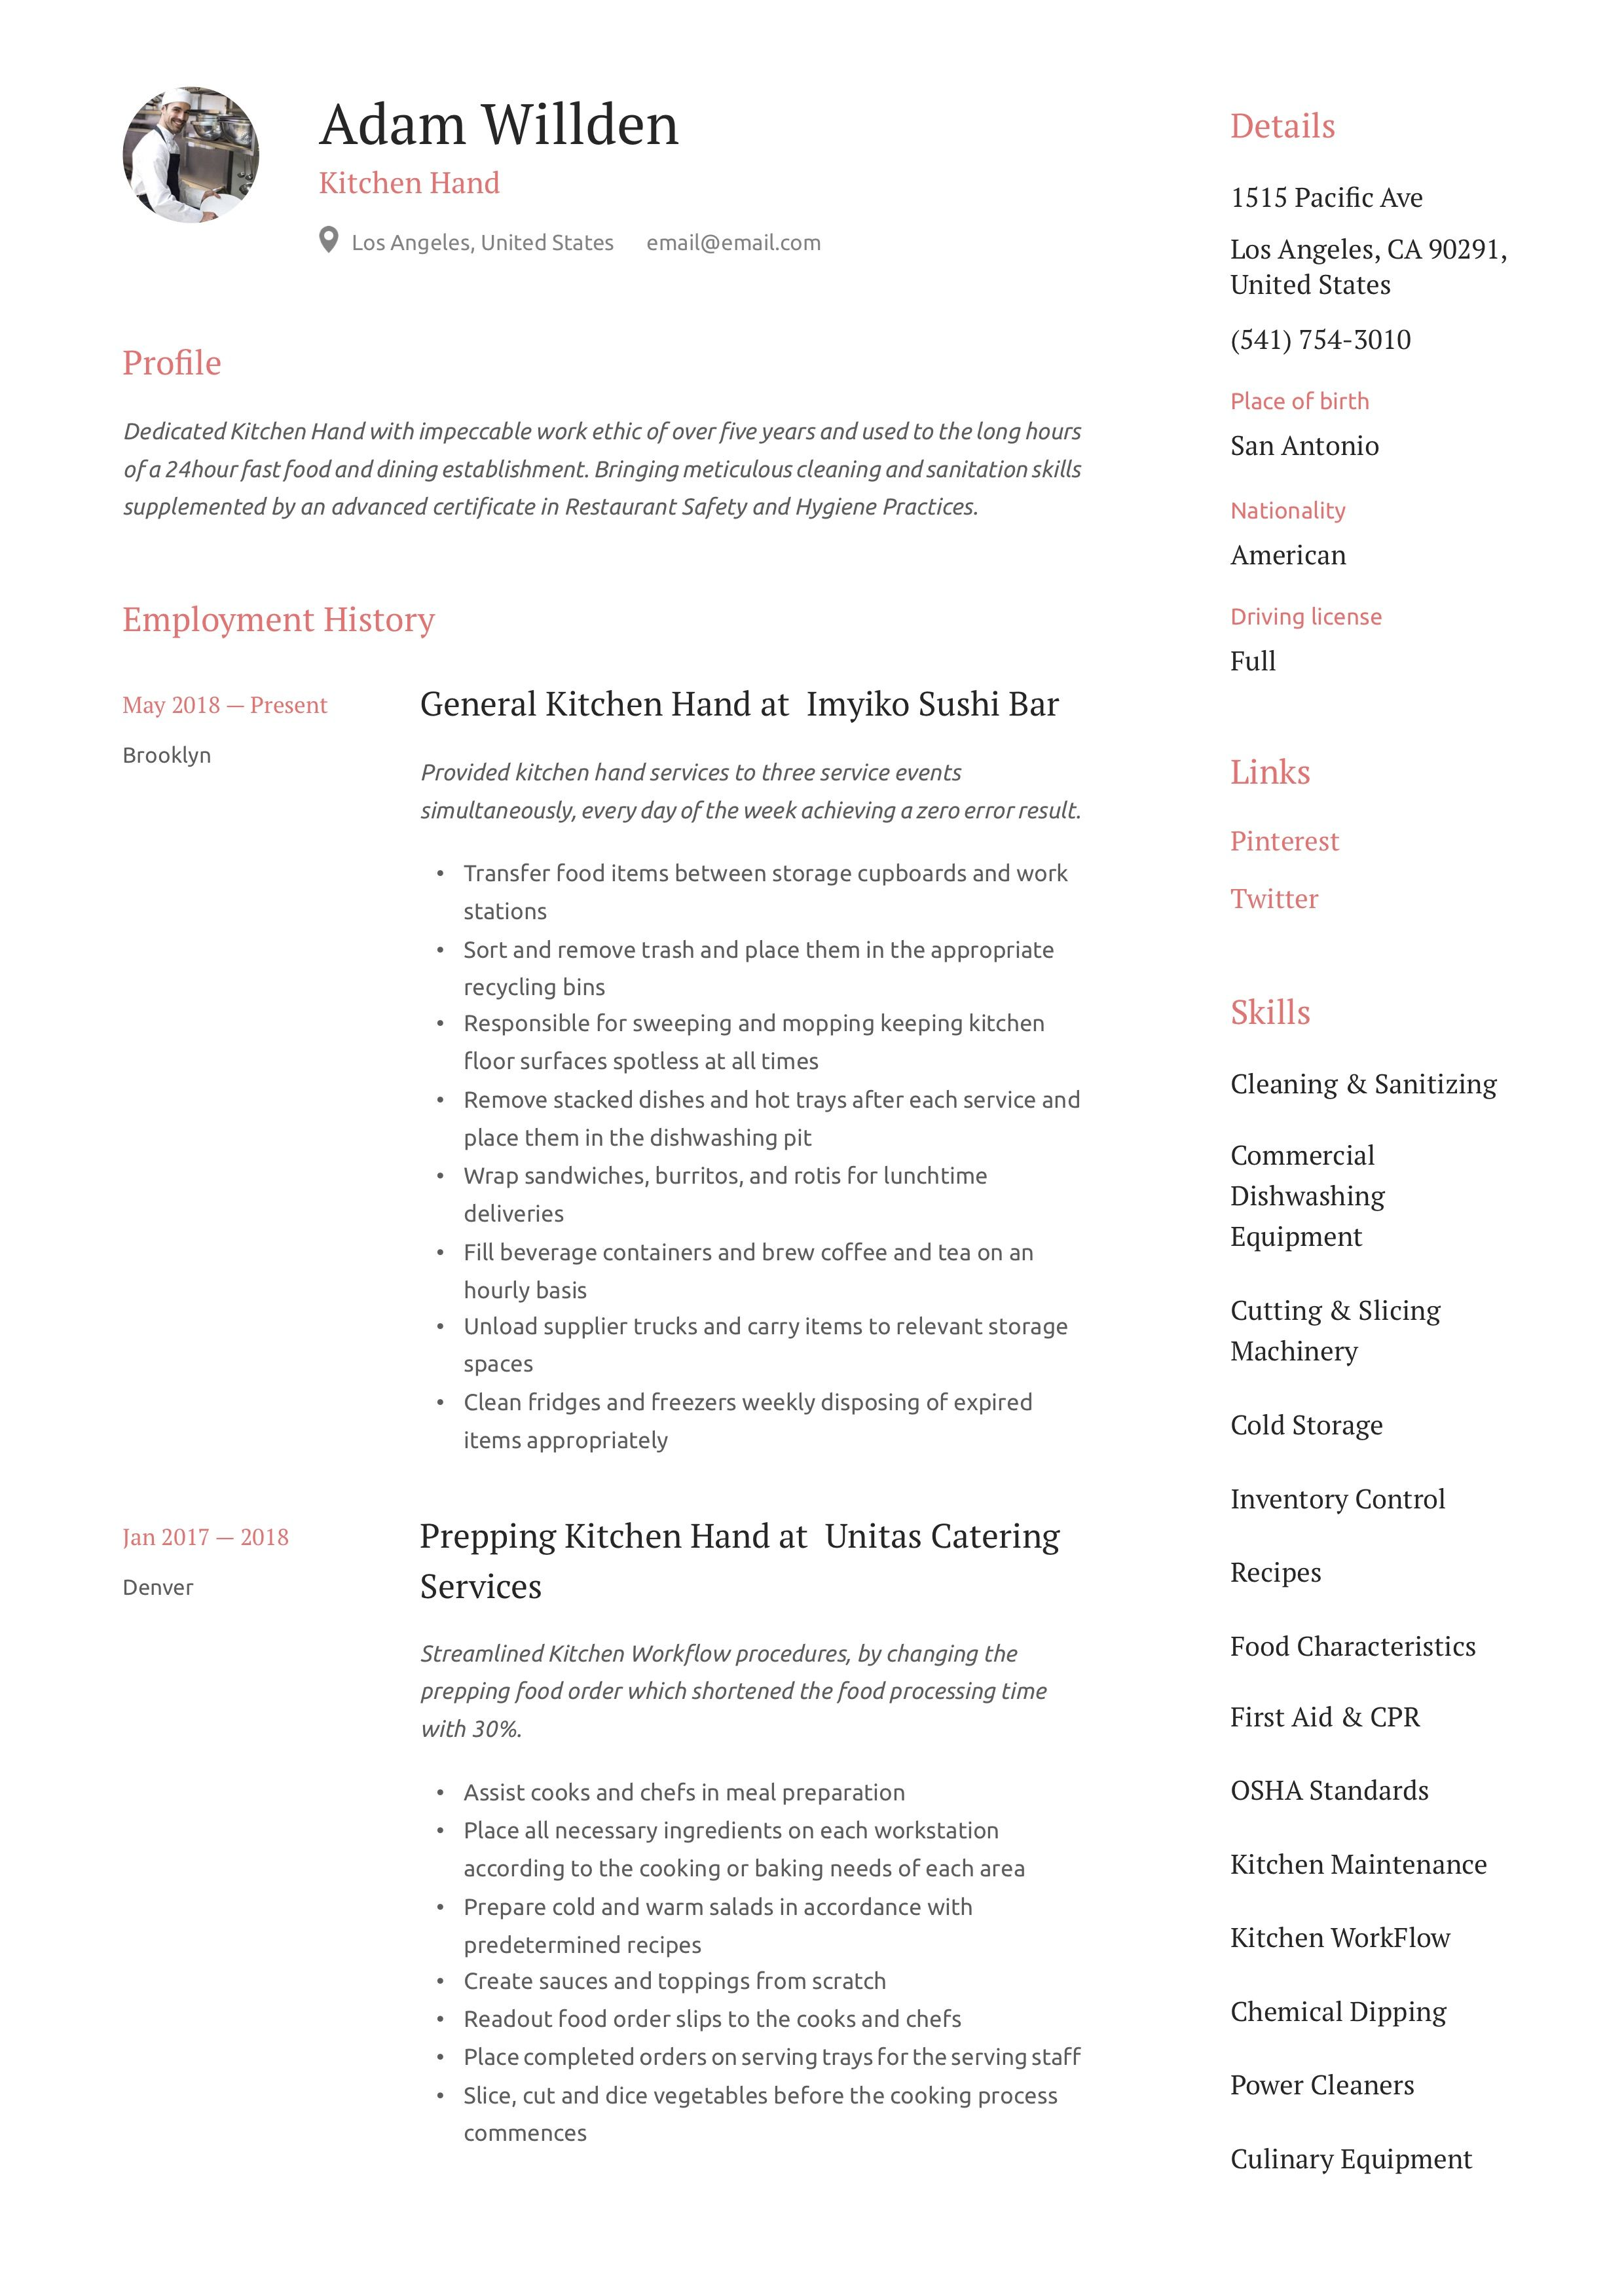 Kitchen hand resume format are there any free essay contests